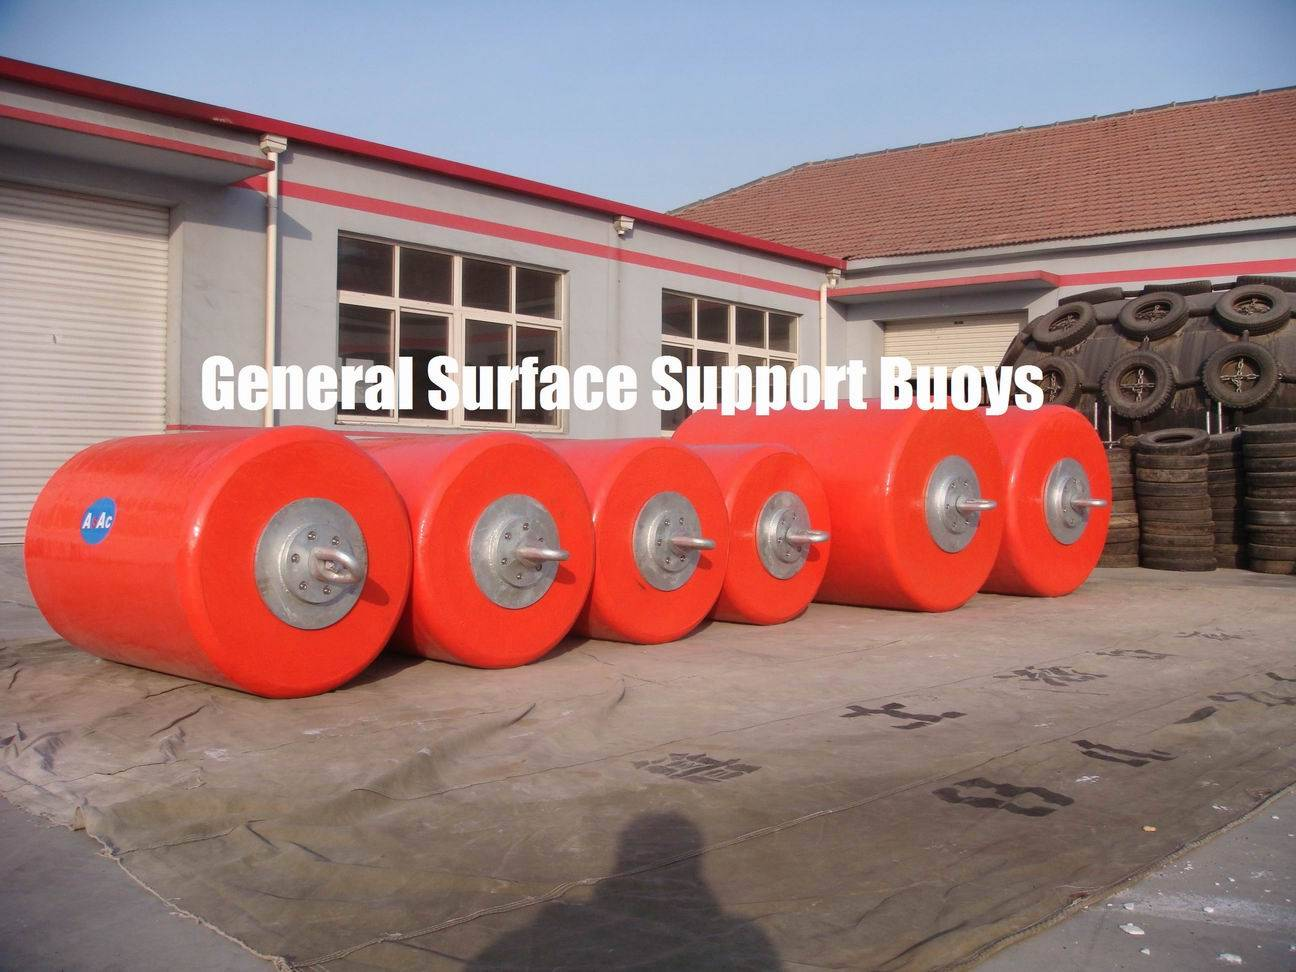 Surface Buoyancy, Cylindrical Buoy, EVA foam structure and removable Clevis Plate/Eye